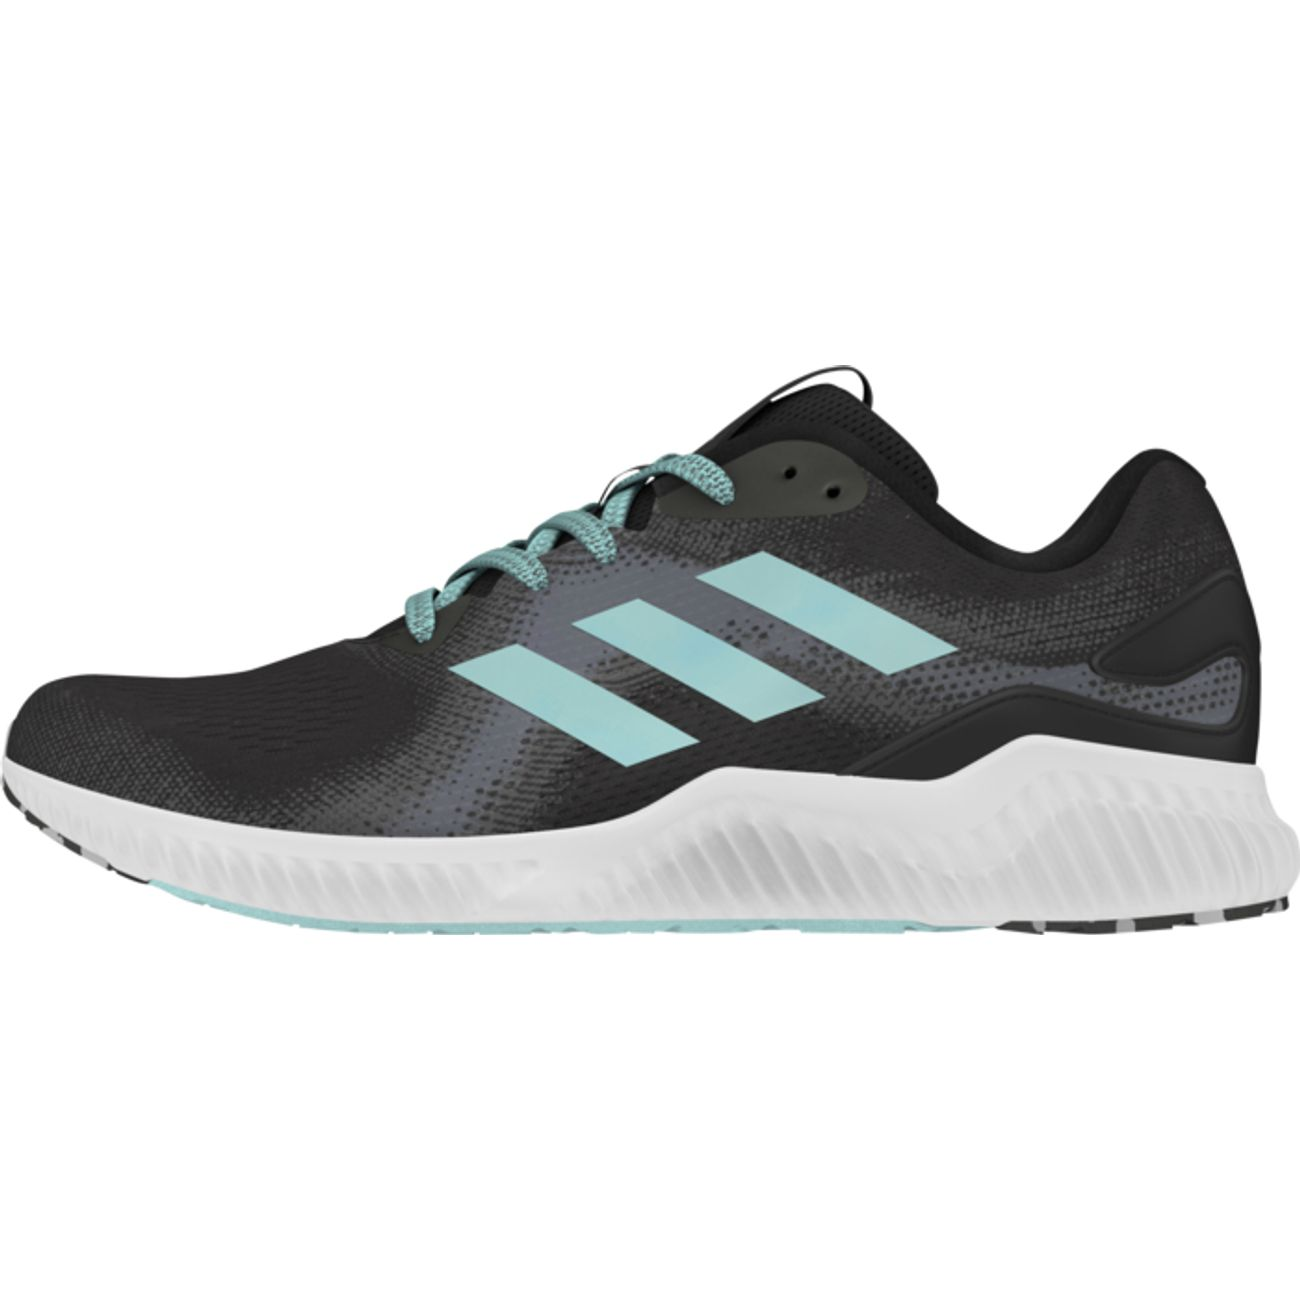 official photos 34b7c 2bac4 CHAUSSURES BASSES ADIDAS AEROBOUNCE ST W ...